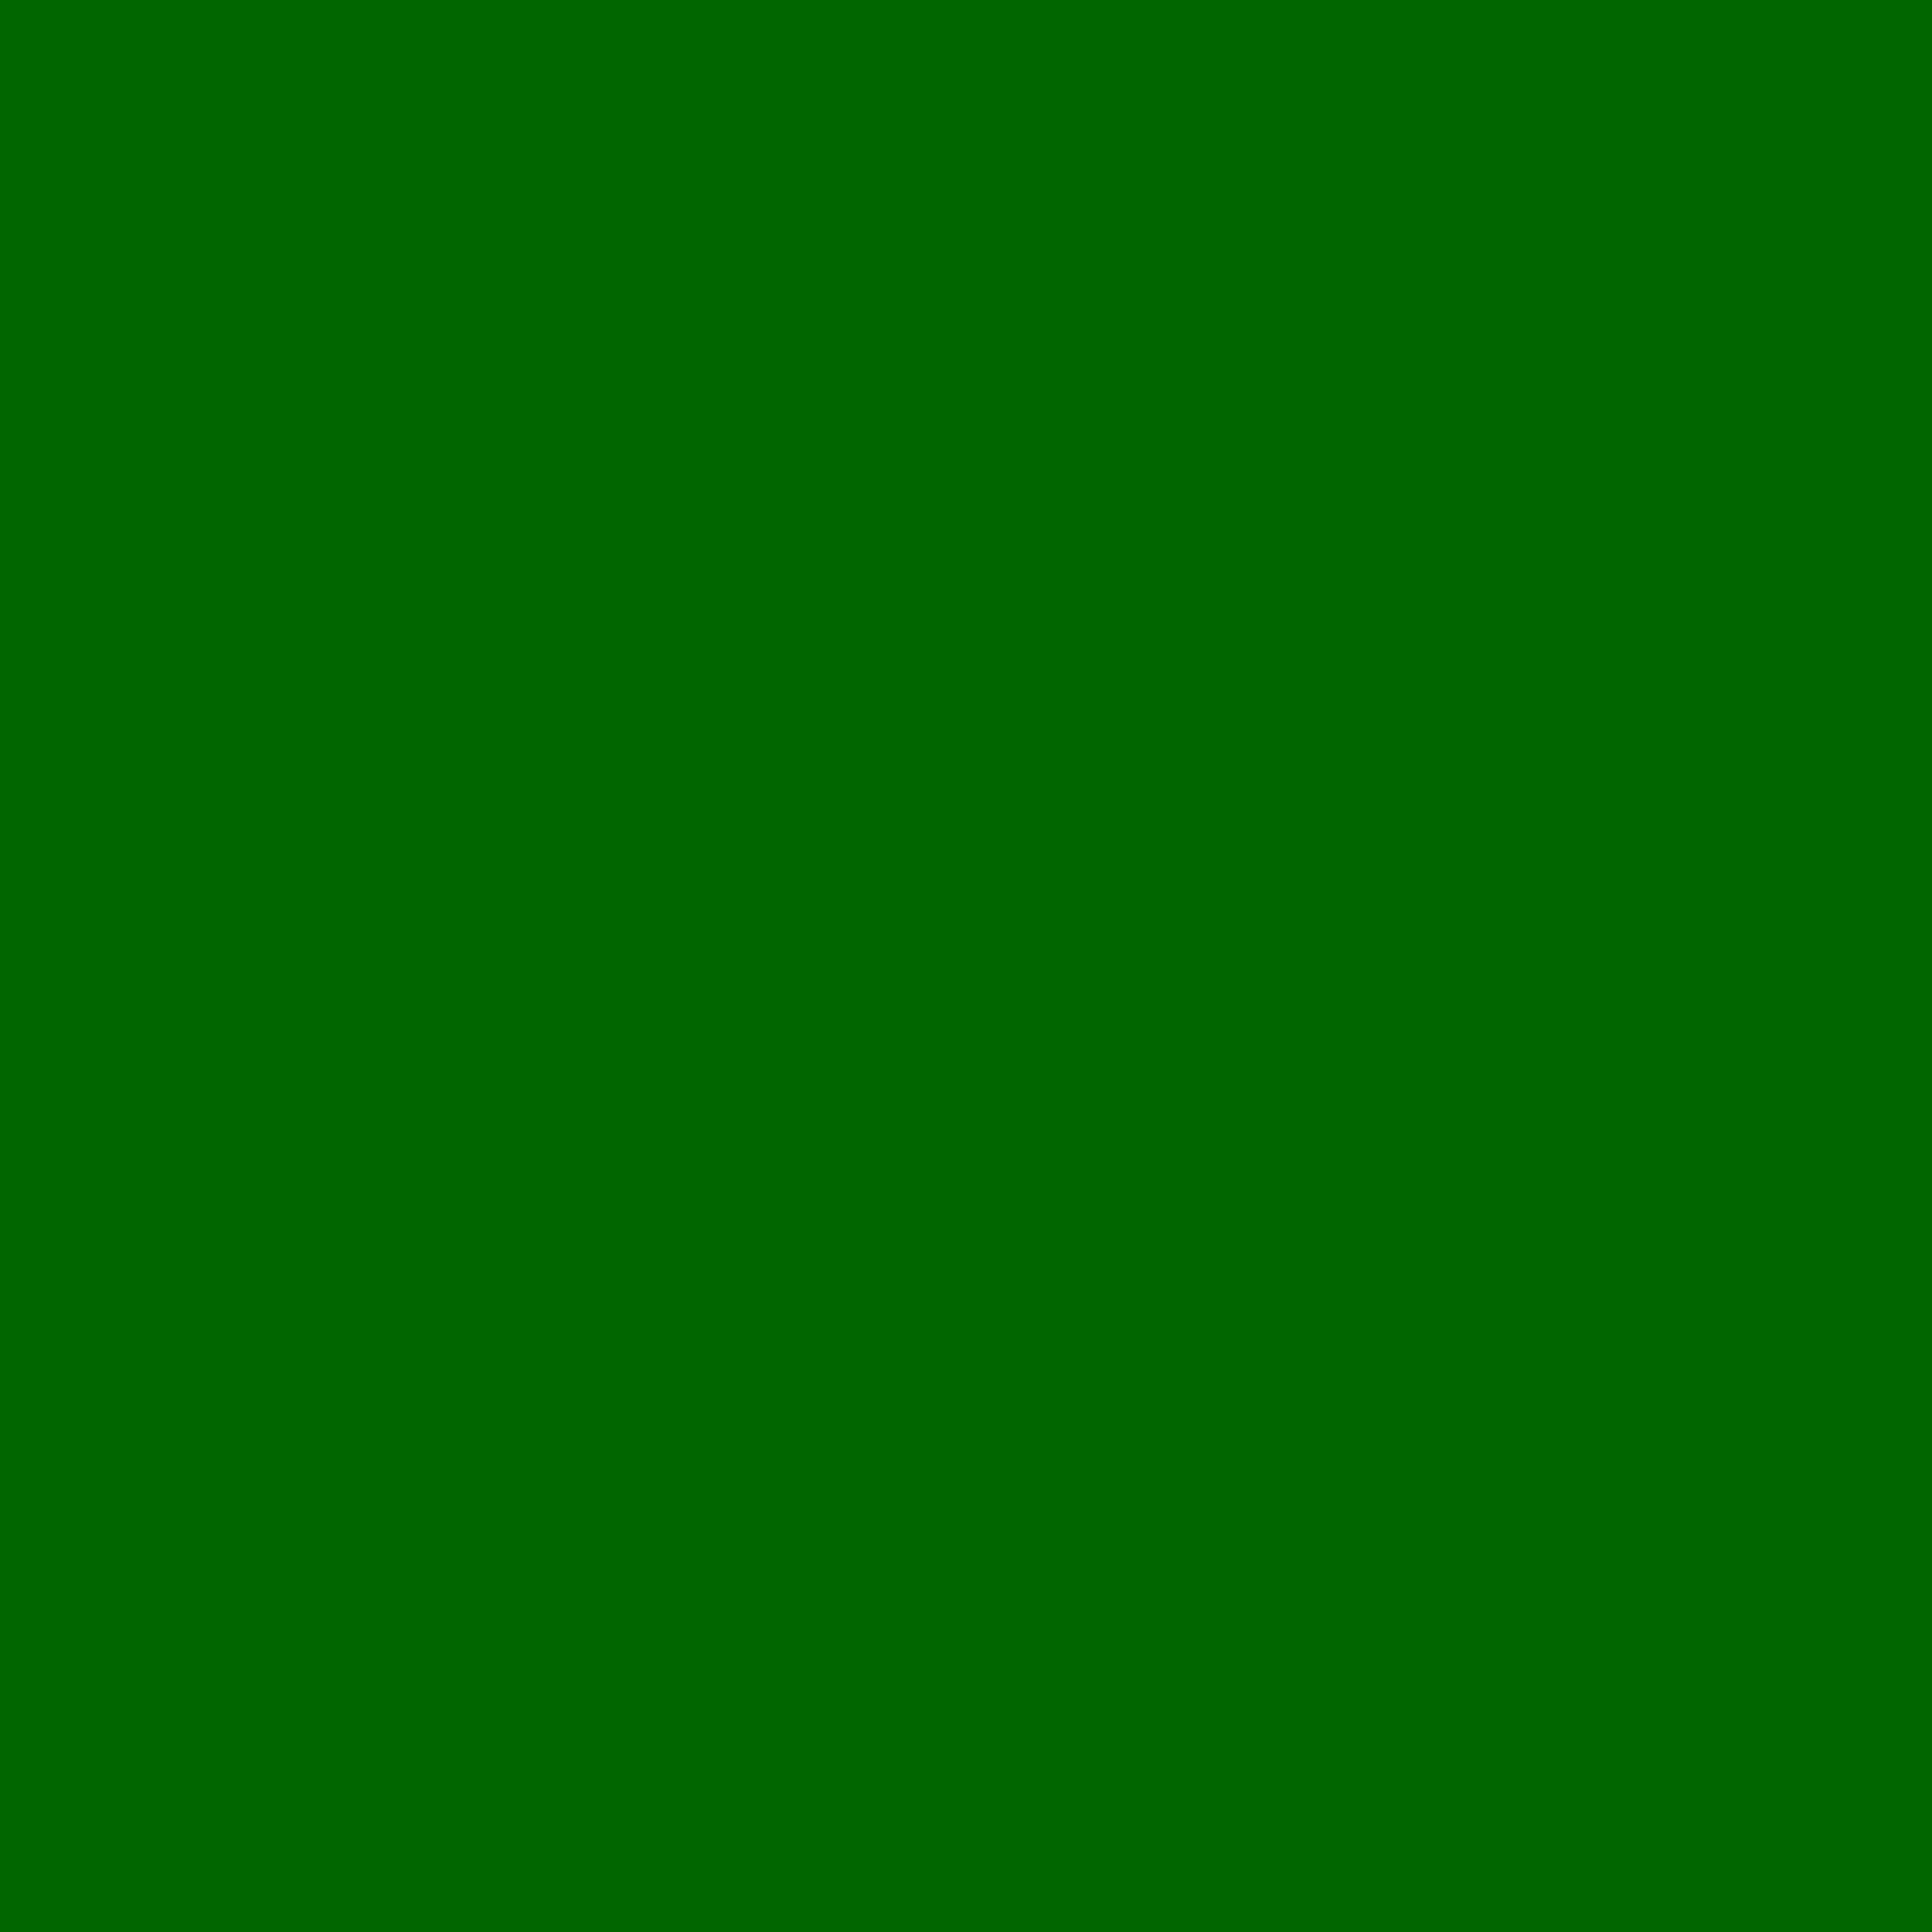 3600x3600 Pakistan Green Solid Color Background